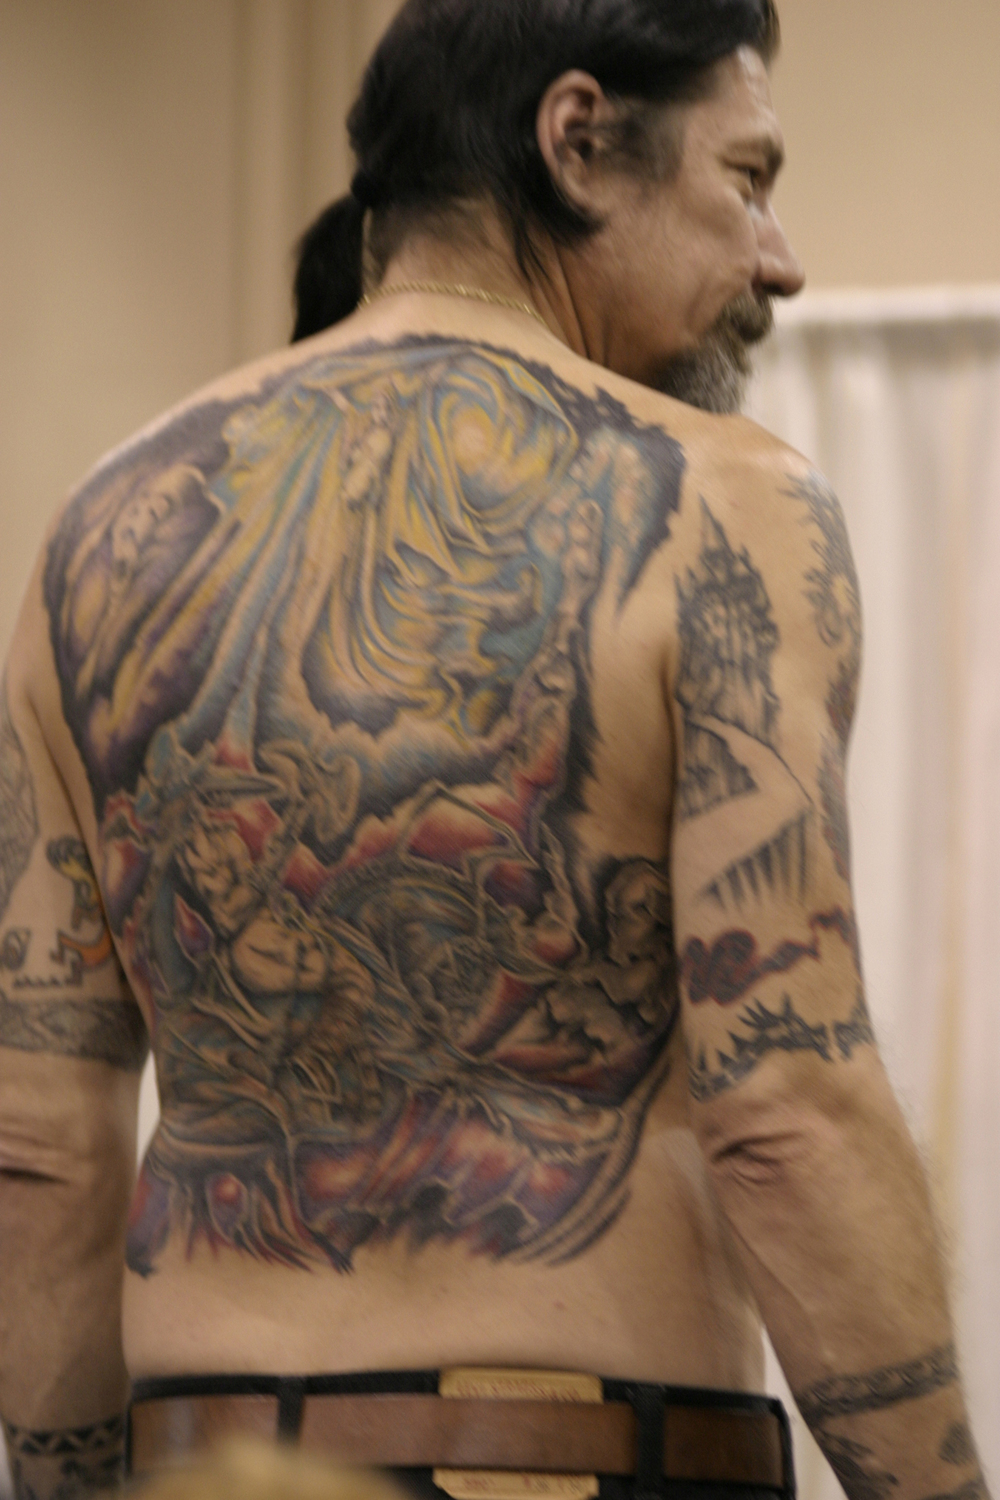 Tattoo_Expo030.JPG